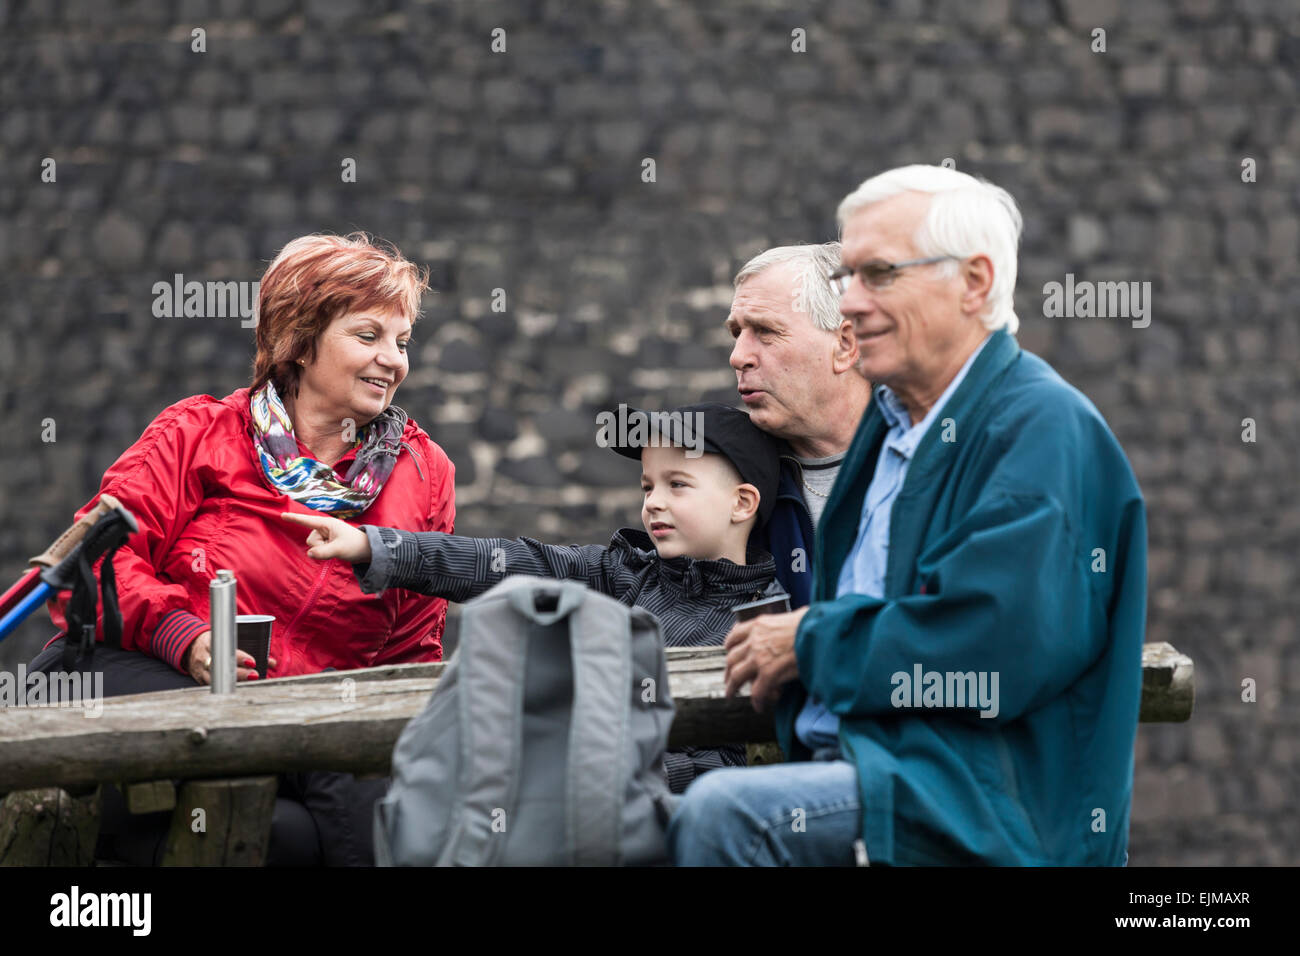 Seniors with child on family hiking trip relaxing outdoors. - Stock Image